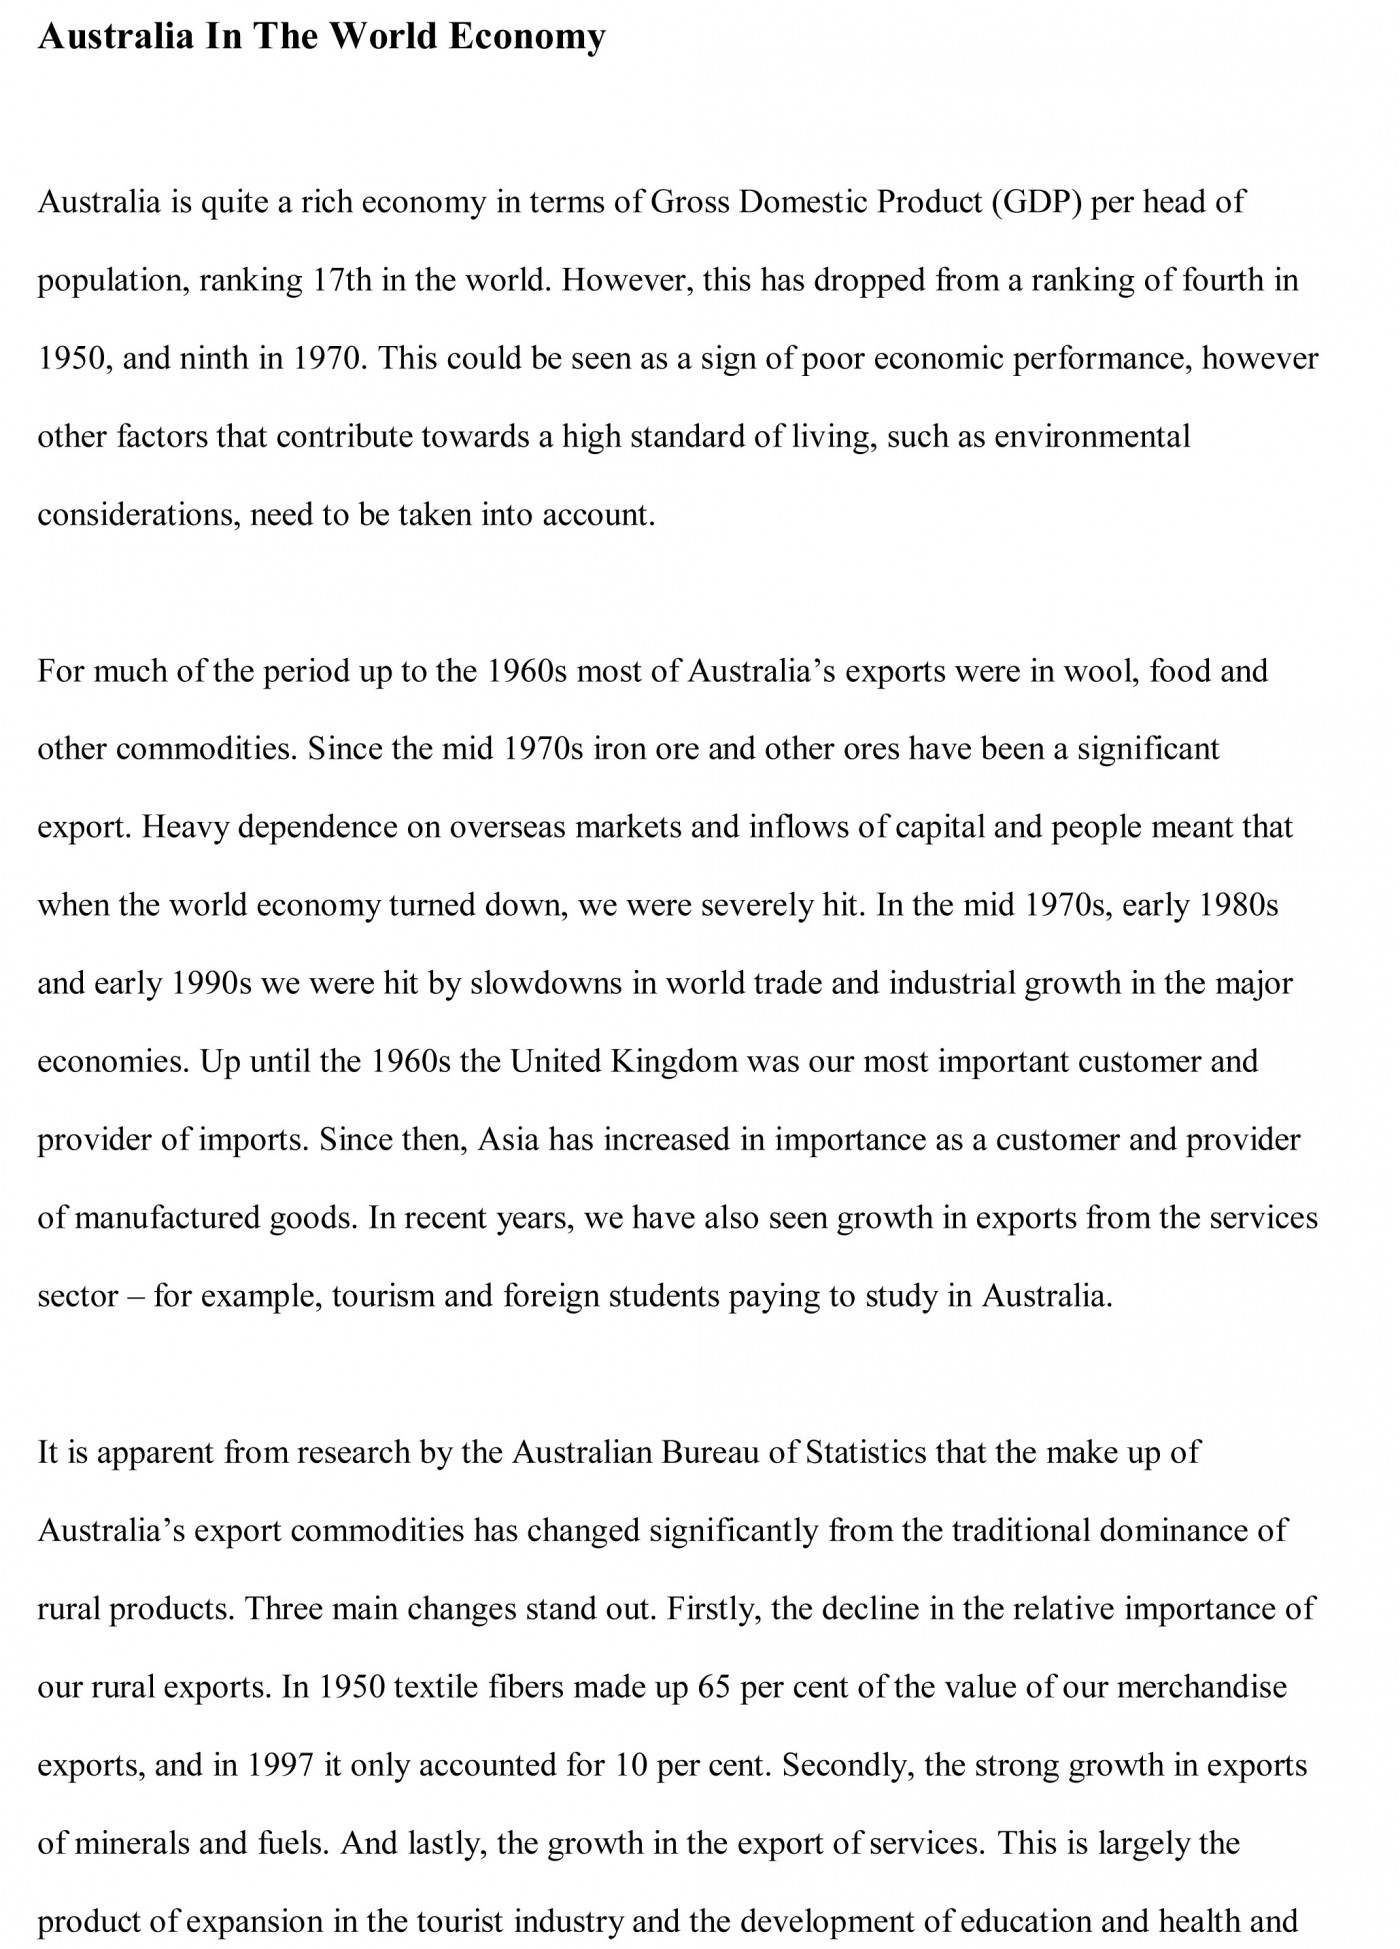 014 Globalization Conclusion Essay Example Economics Free Wonderful 1400